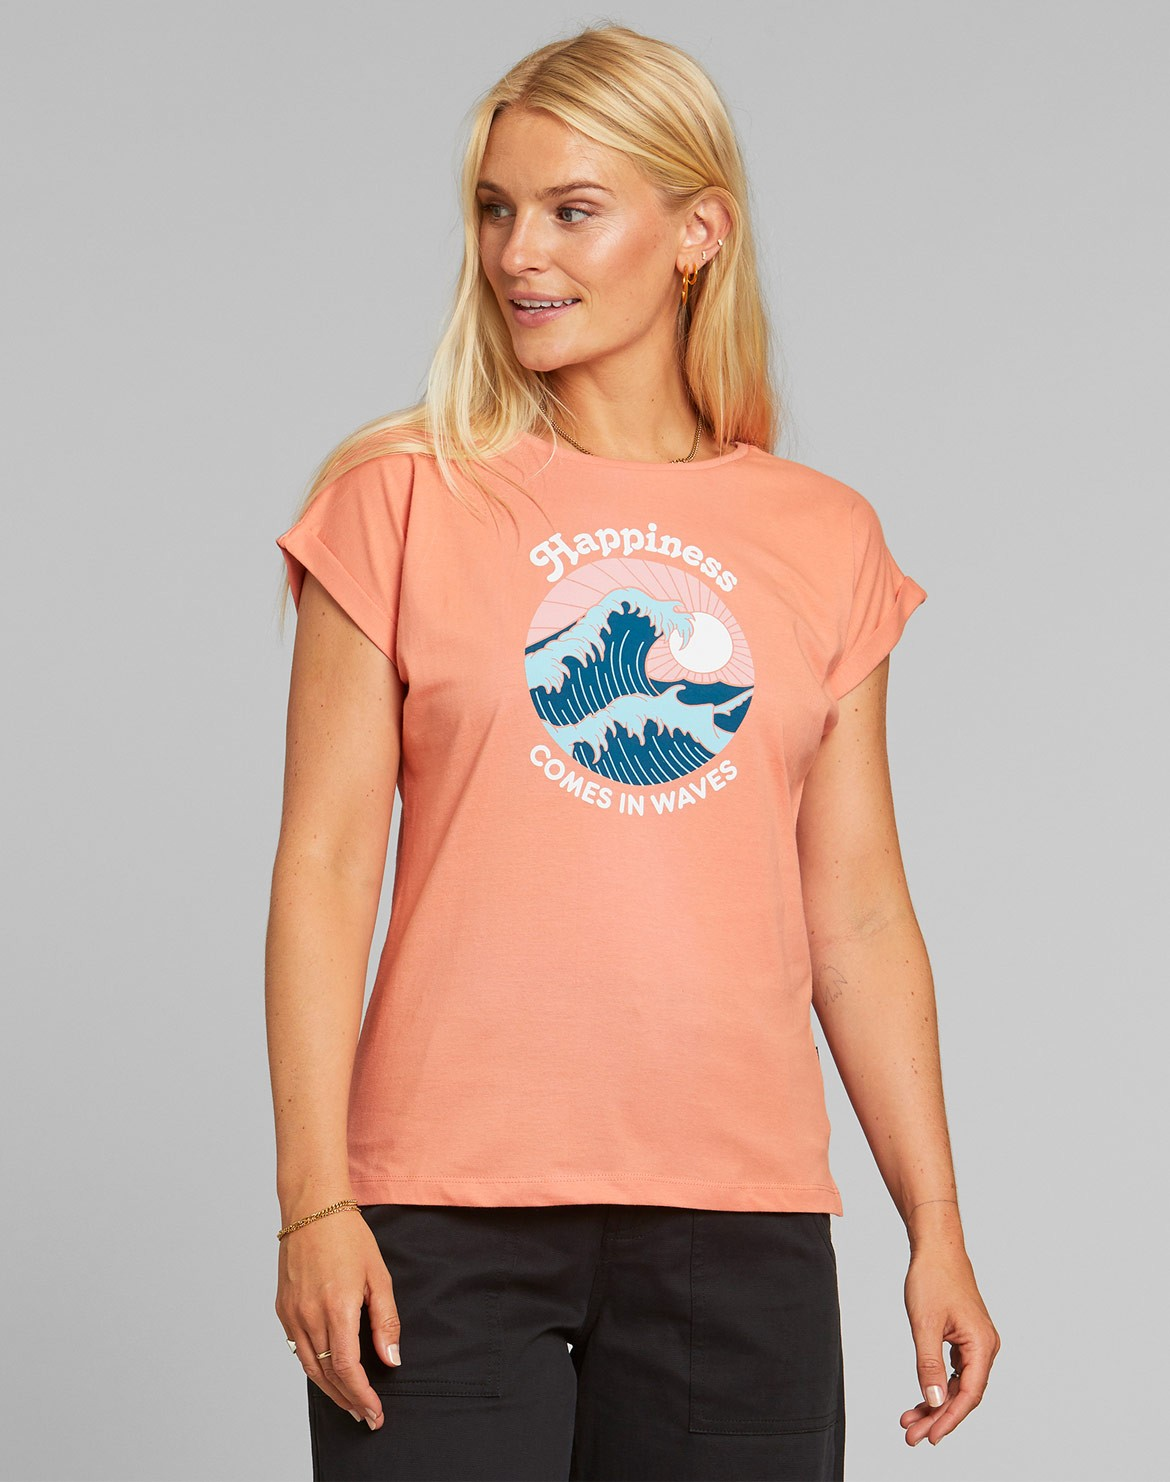 Visby Happiness T-Shirt